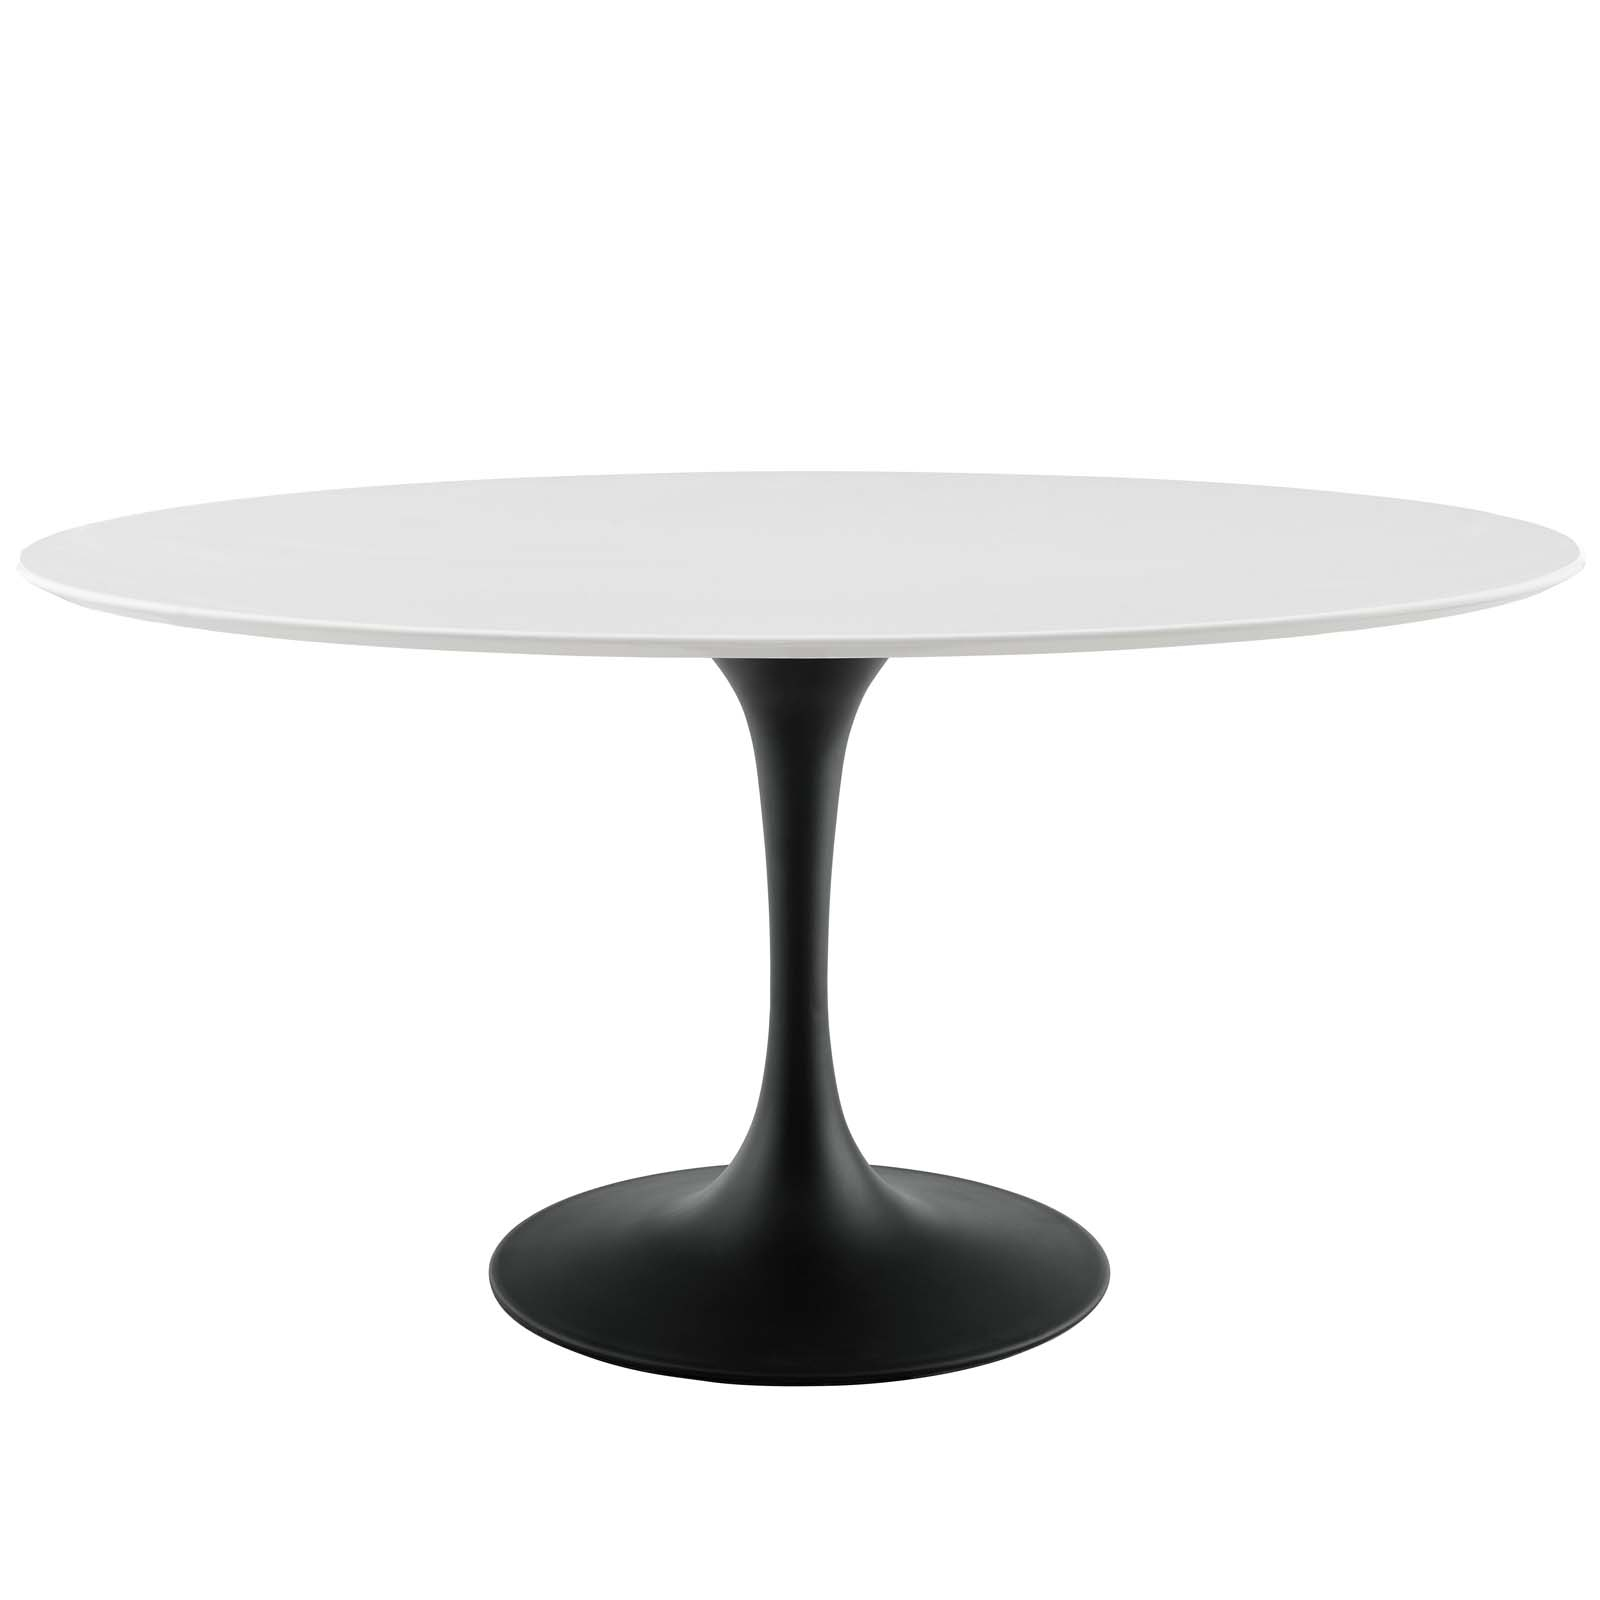 Online Shopping Bedding Furniture Electronics Jewelry Clothing More Dining Table Door Dining Table Dining